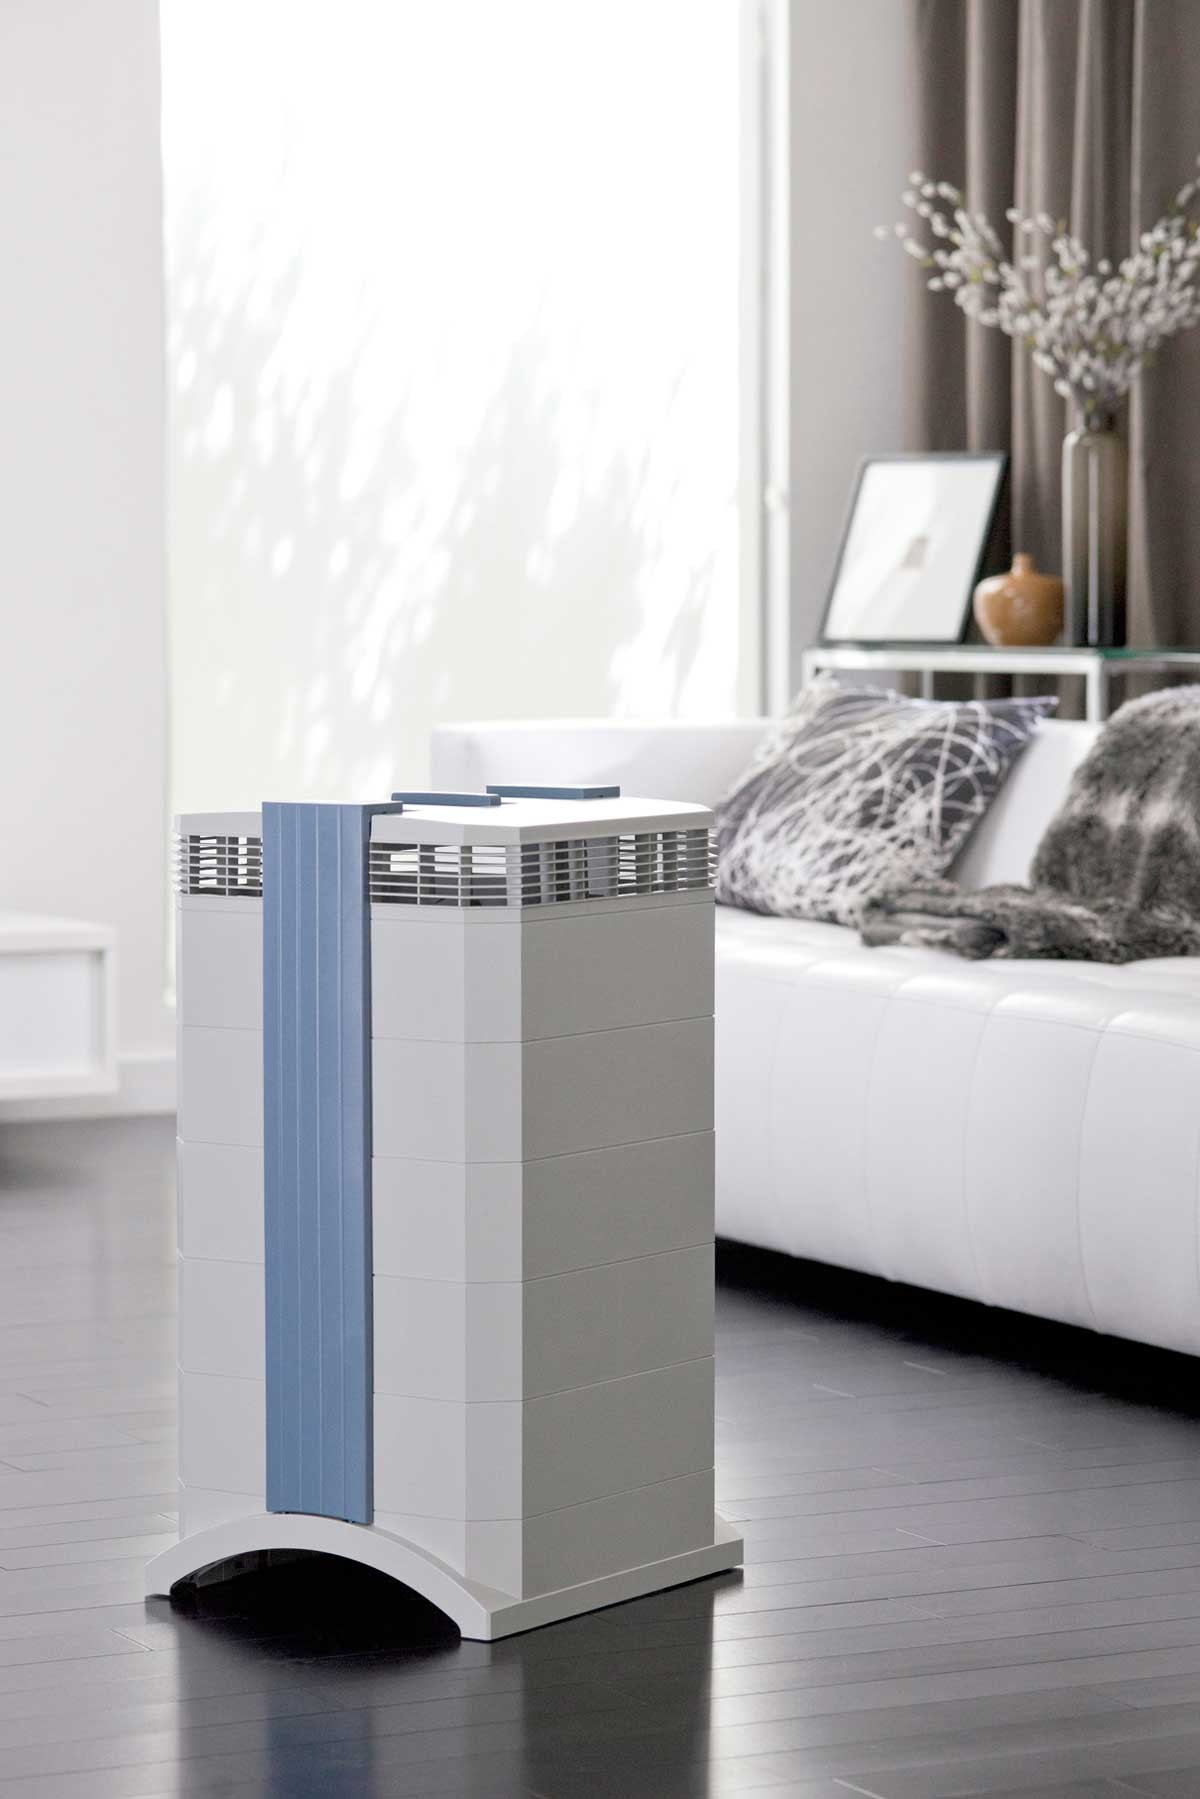 Image Result For Buy Best Air Purifier